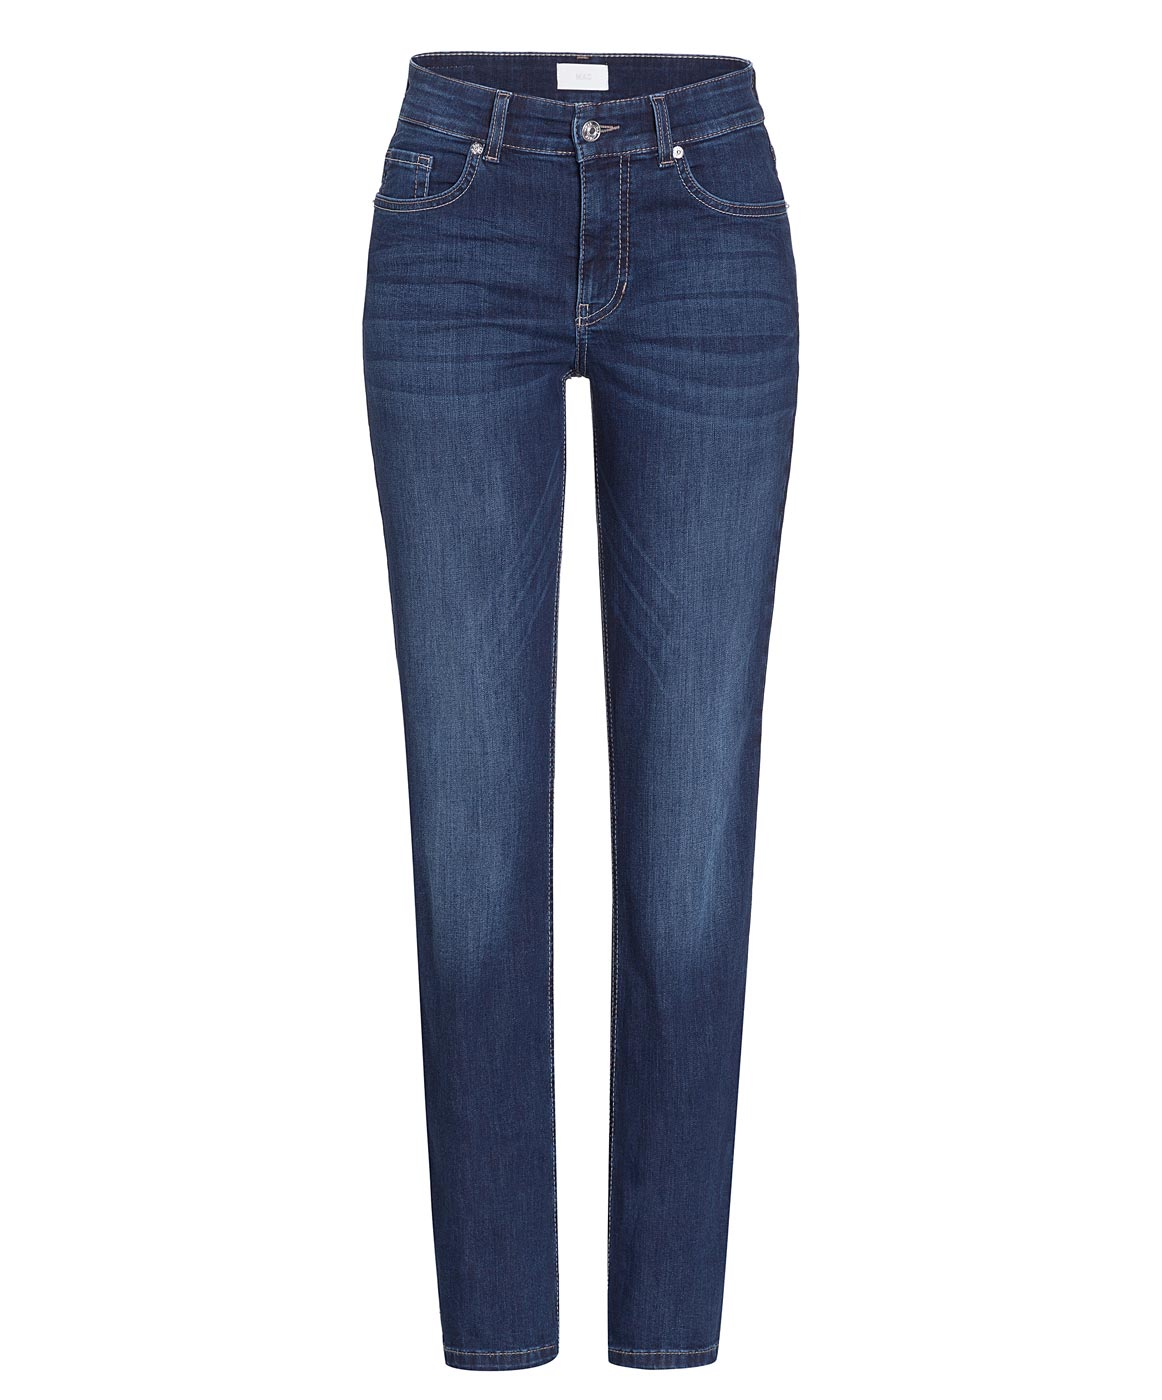 Melanie Jeans - Straight Leg - New Basic Wash